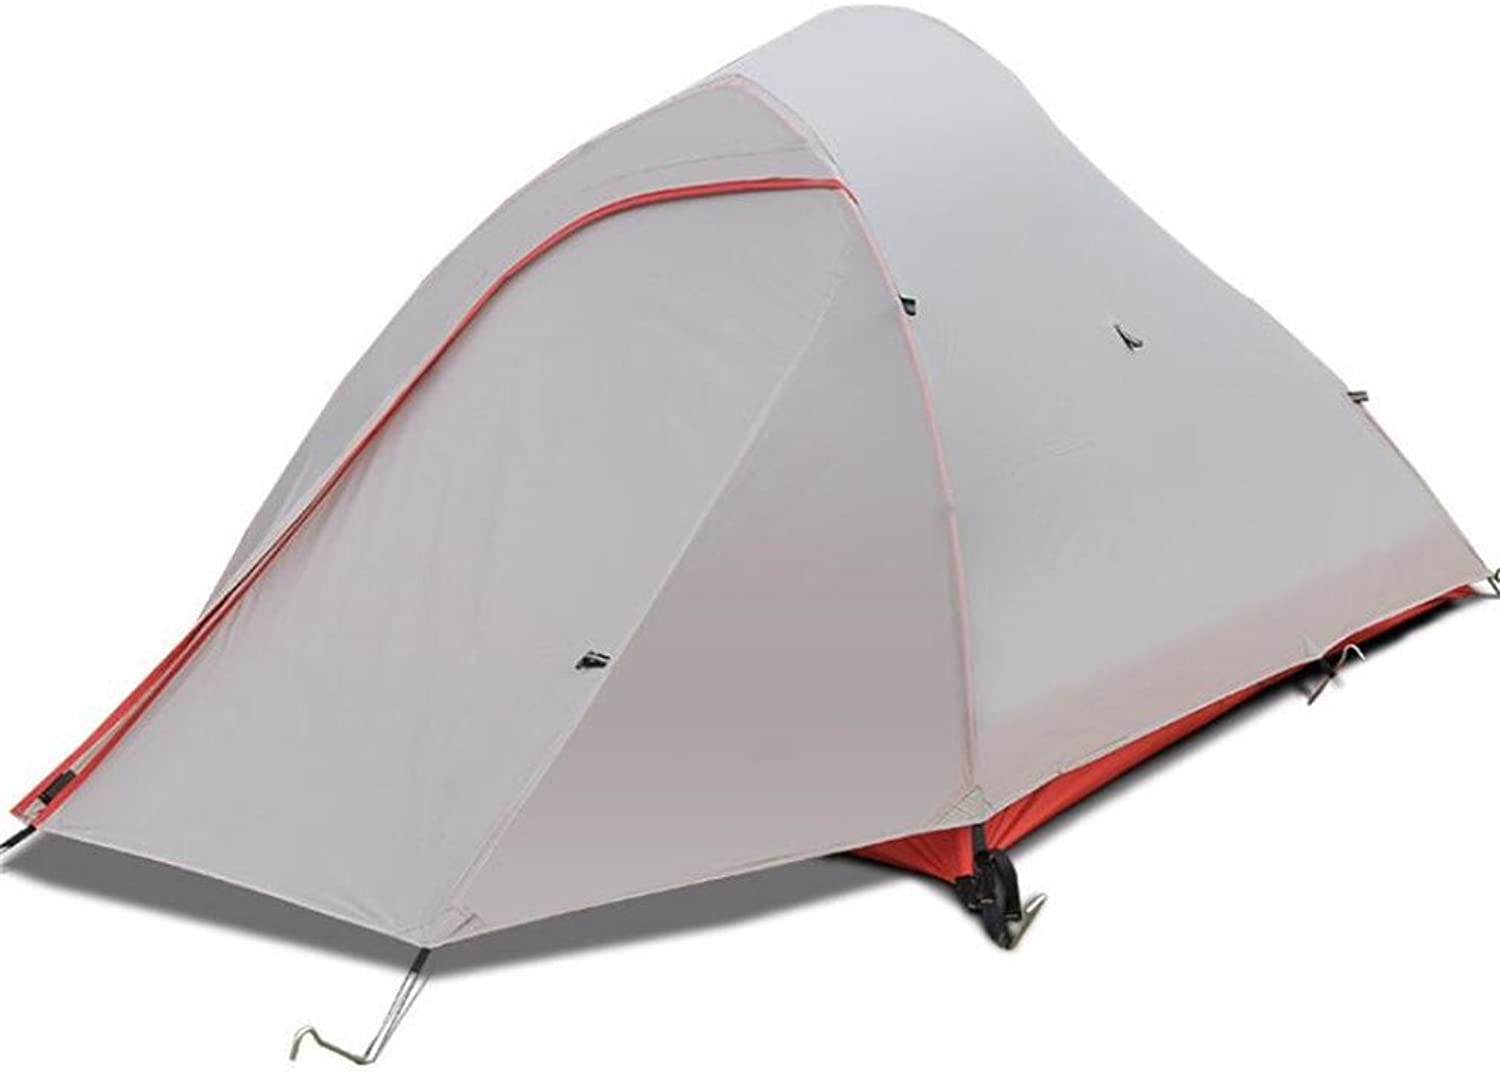 Camping Tent, Party Tent with Side Panels for Beach Days, Festivals & Camping 1Person